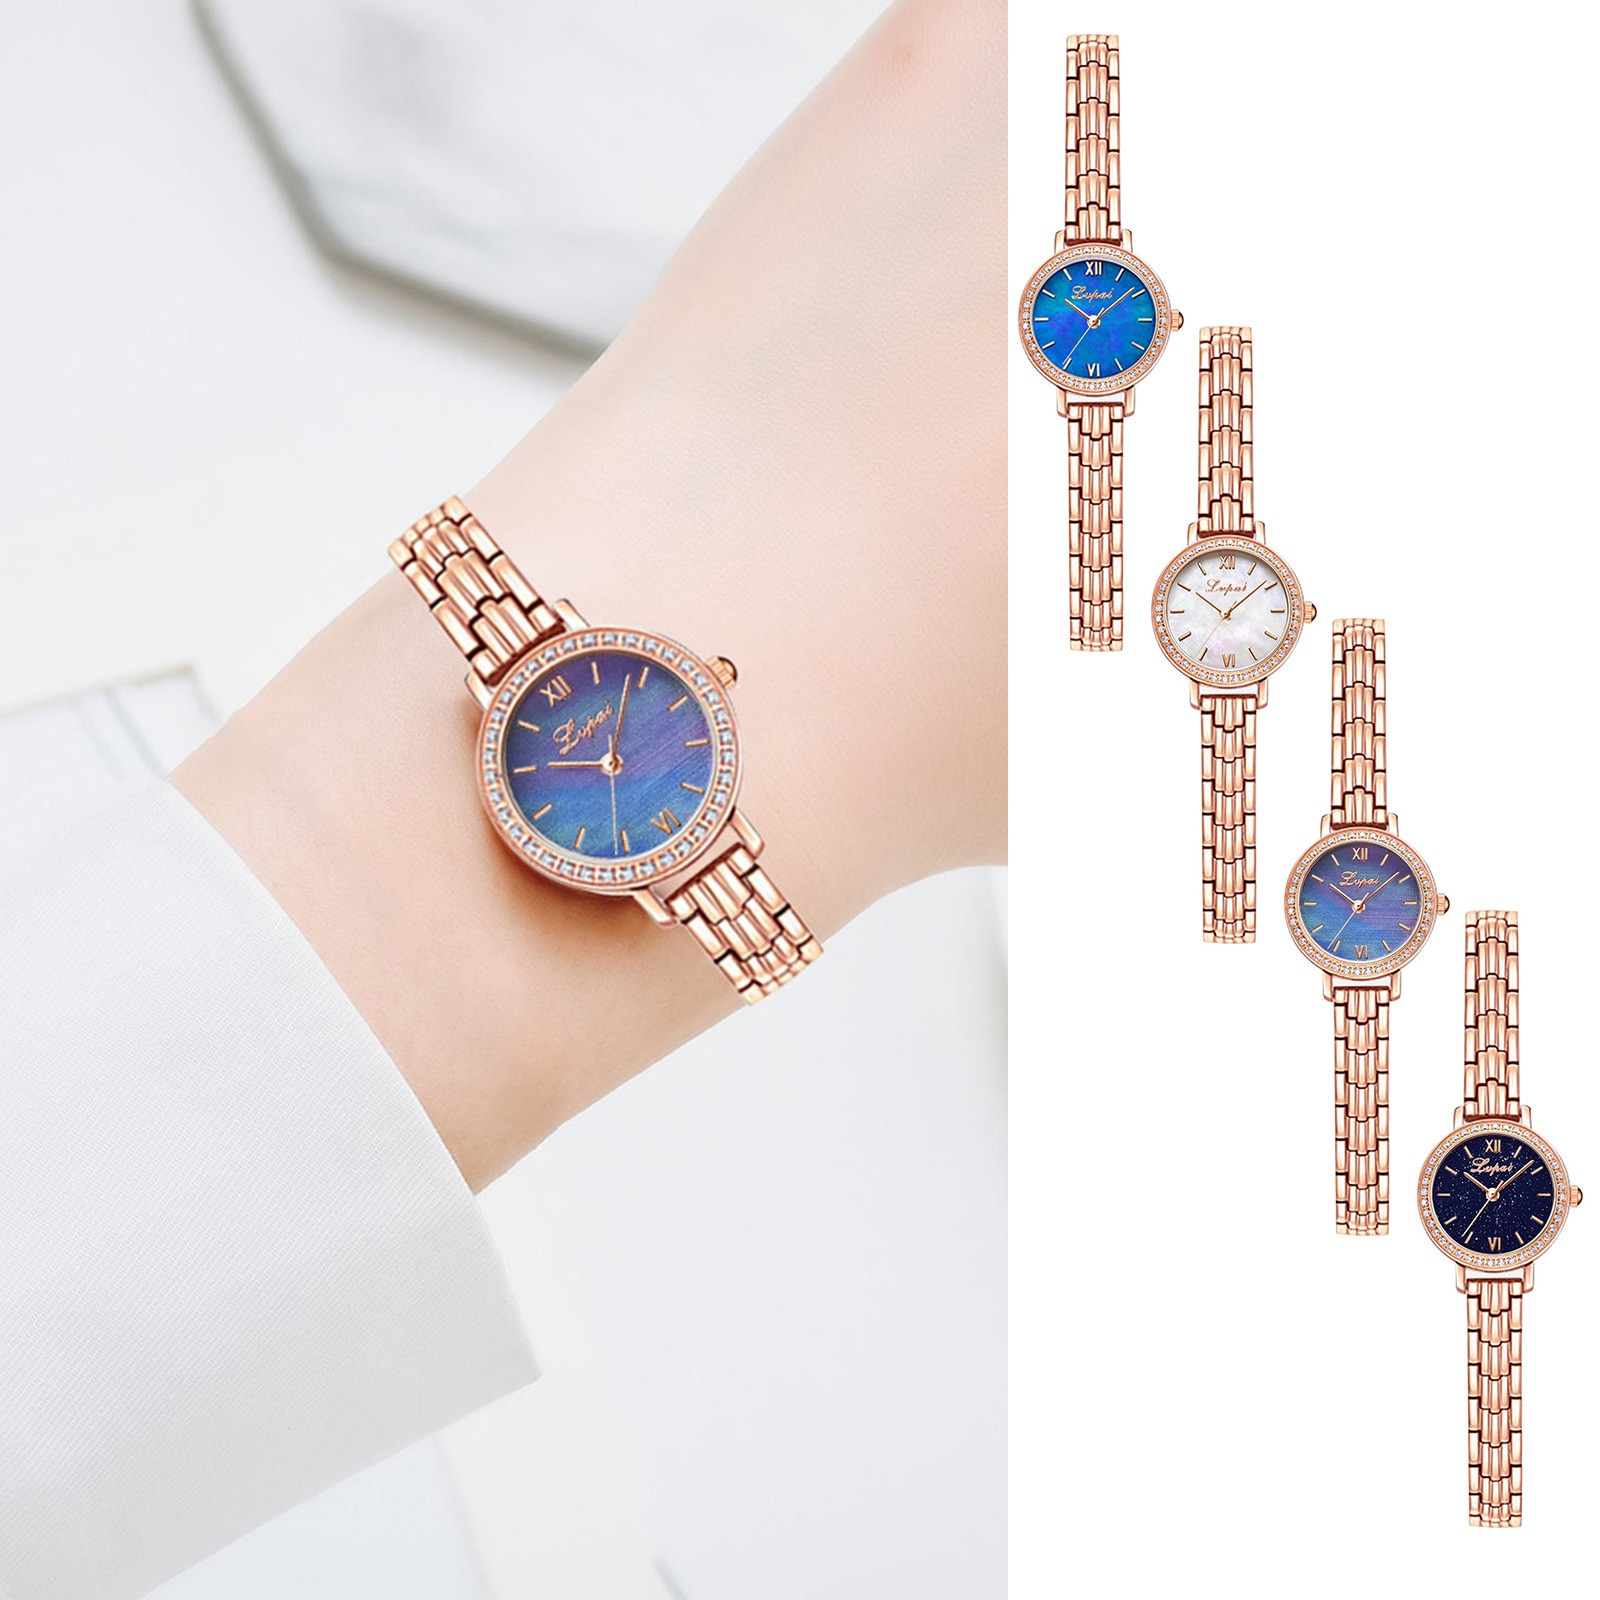 Small Exquisite Quartz Watch Stainless Steel Strap Women Fashion  Bracelet Clasp Wristwatch Montre F